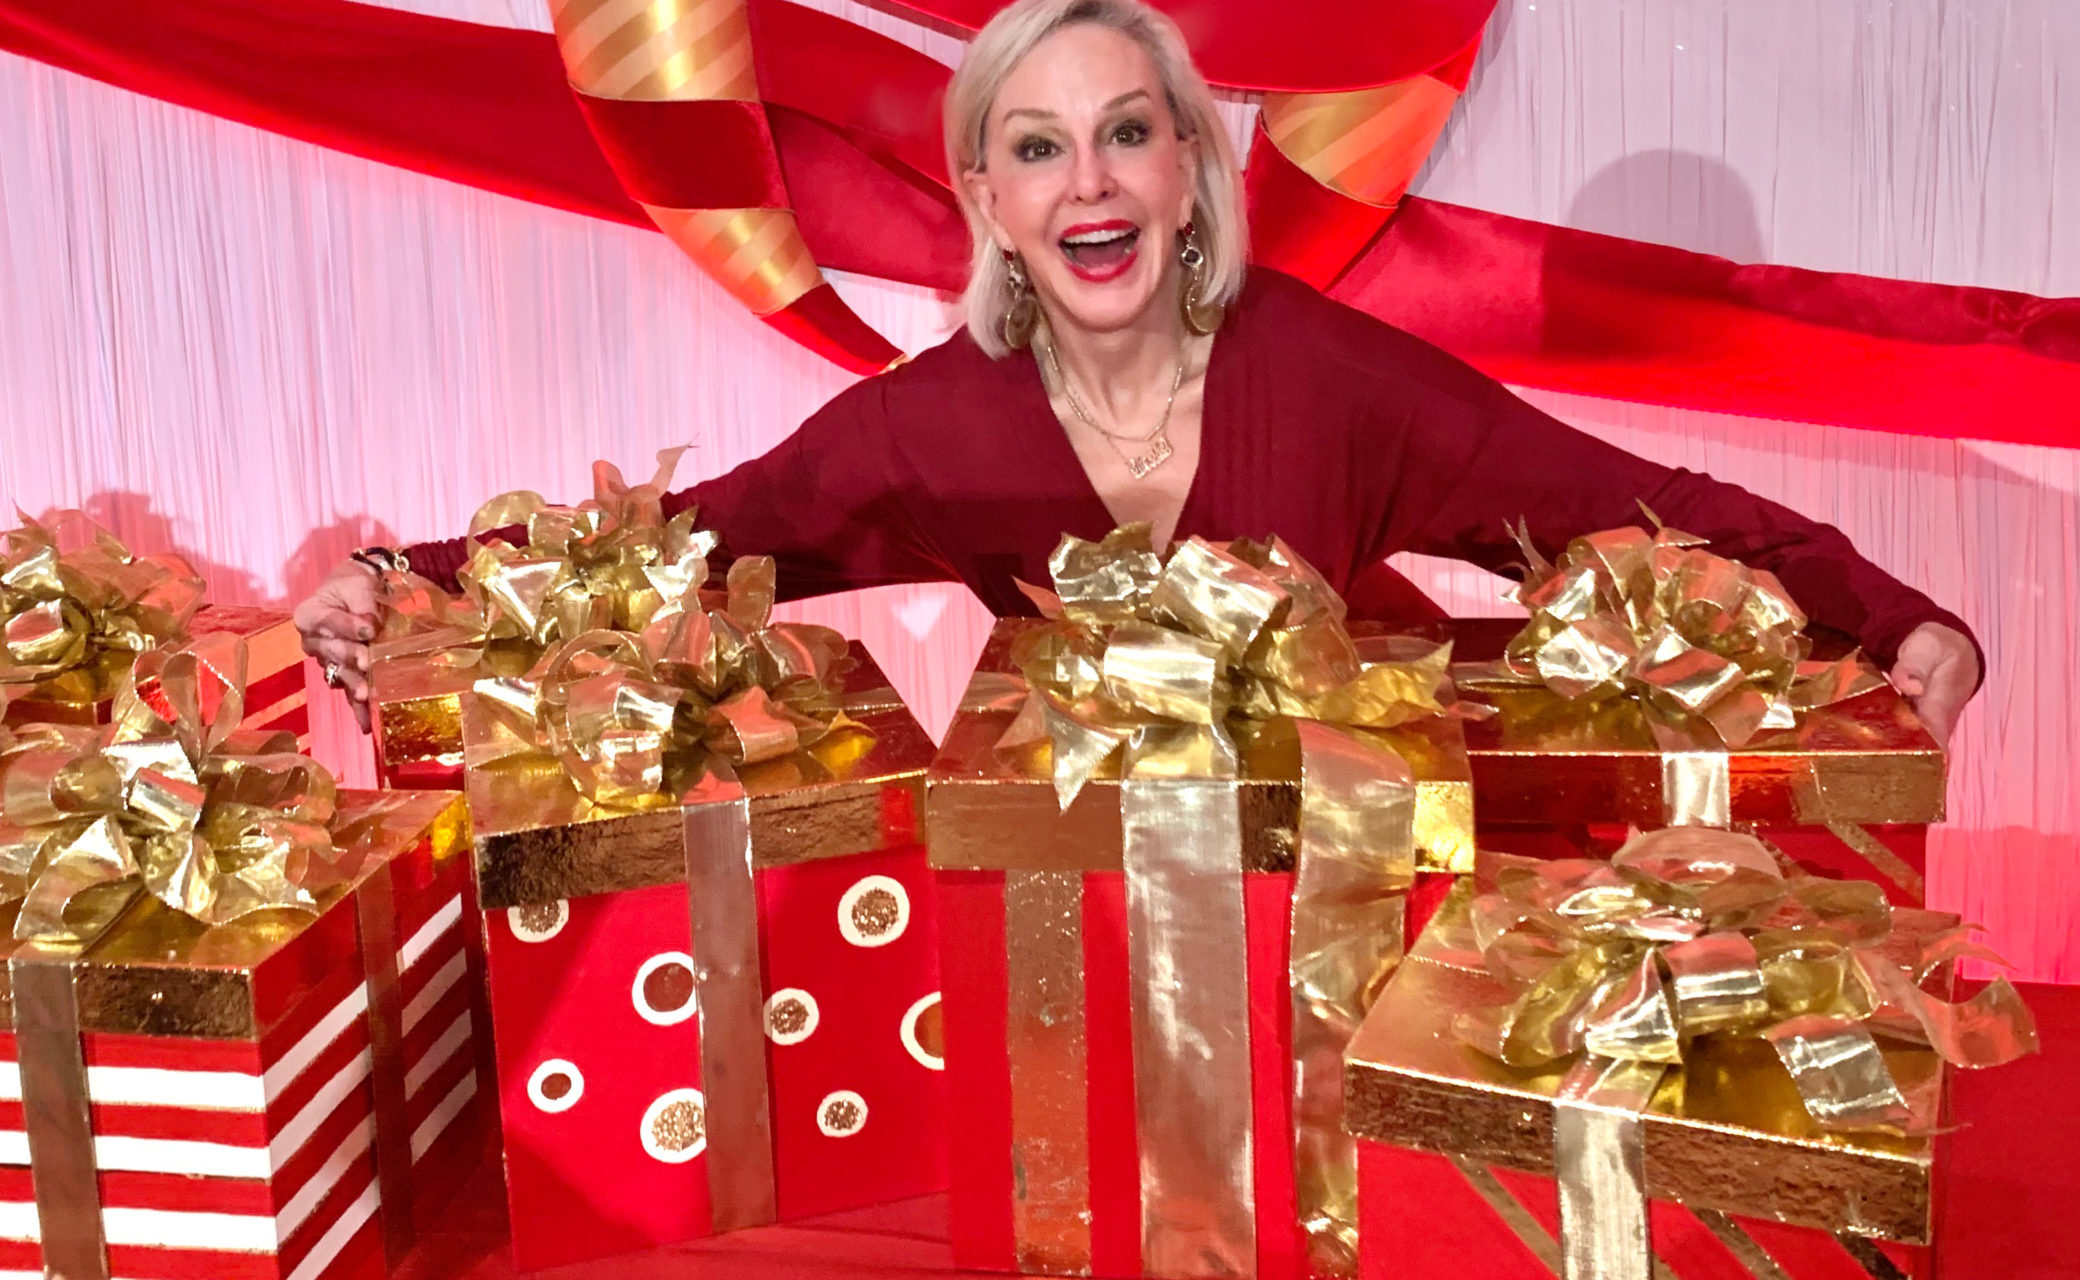 Sheree Frede of the SheShe Show standing behind a lot of wrapped Christmas presents